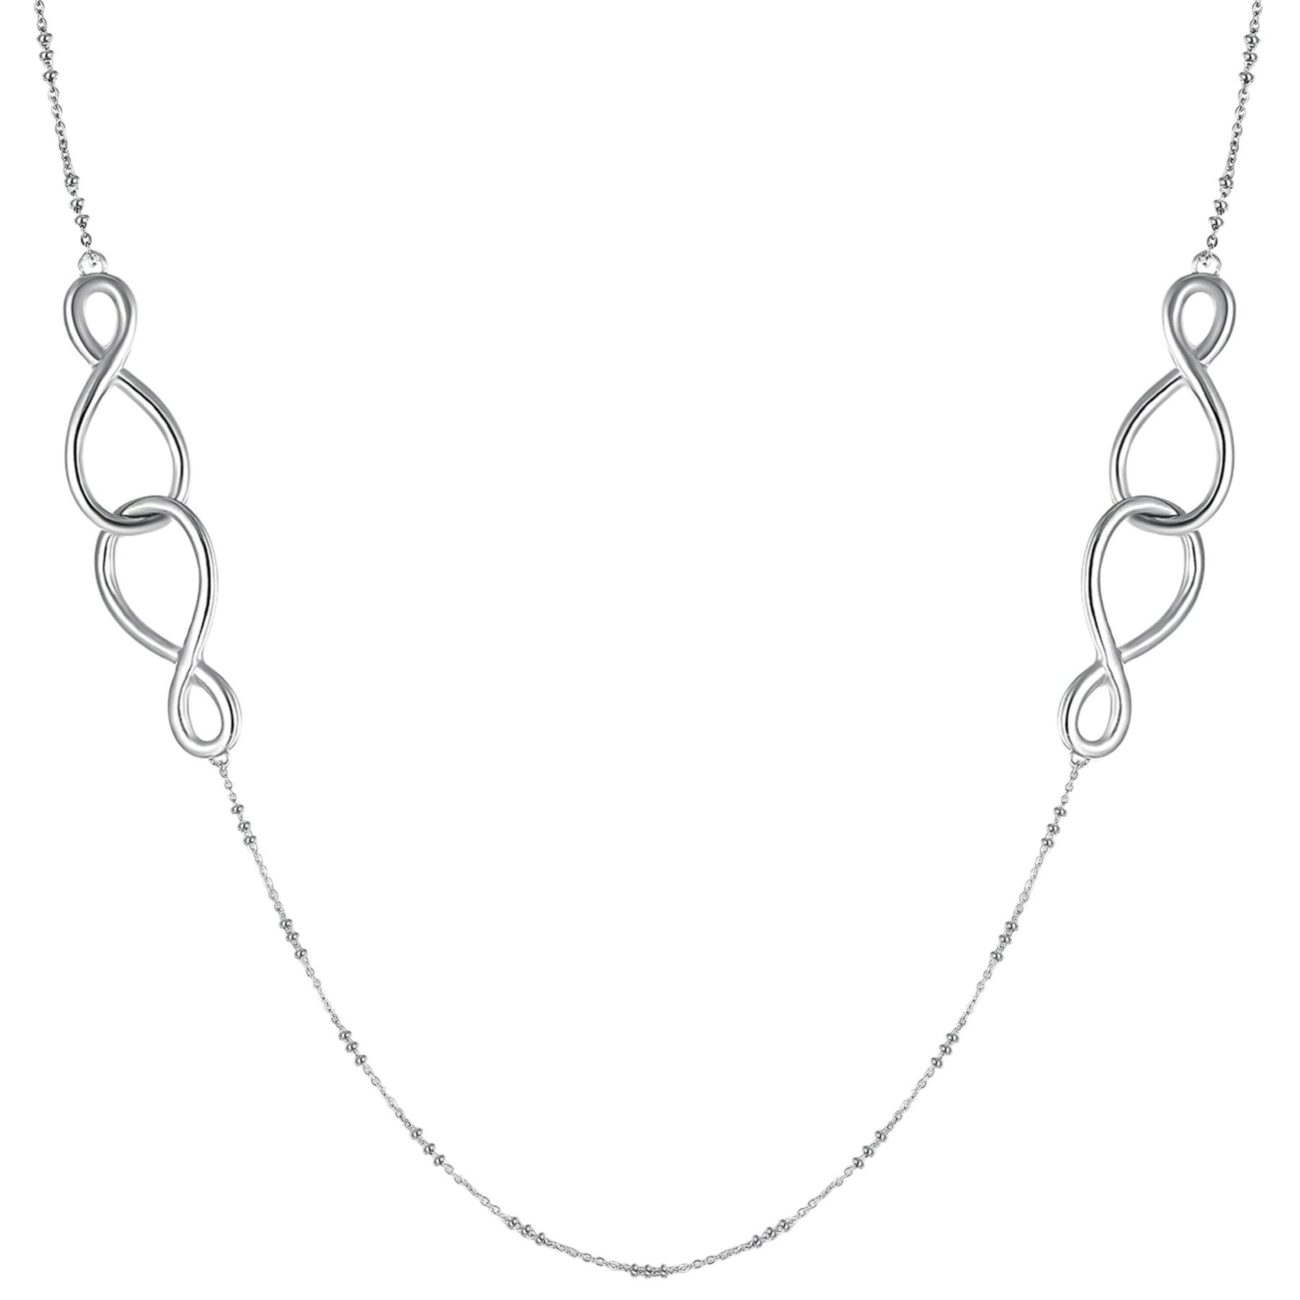 316L stainless steel necklace with crystals and infinity shaped details.